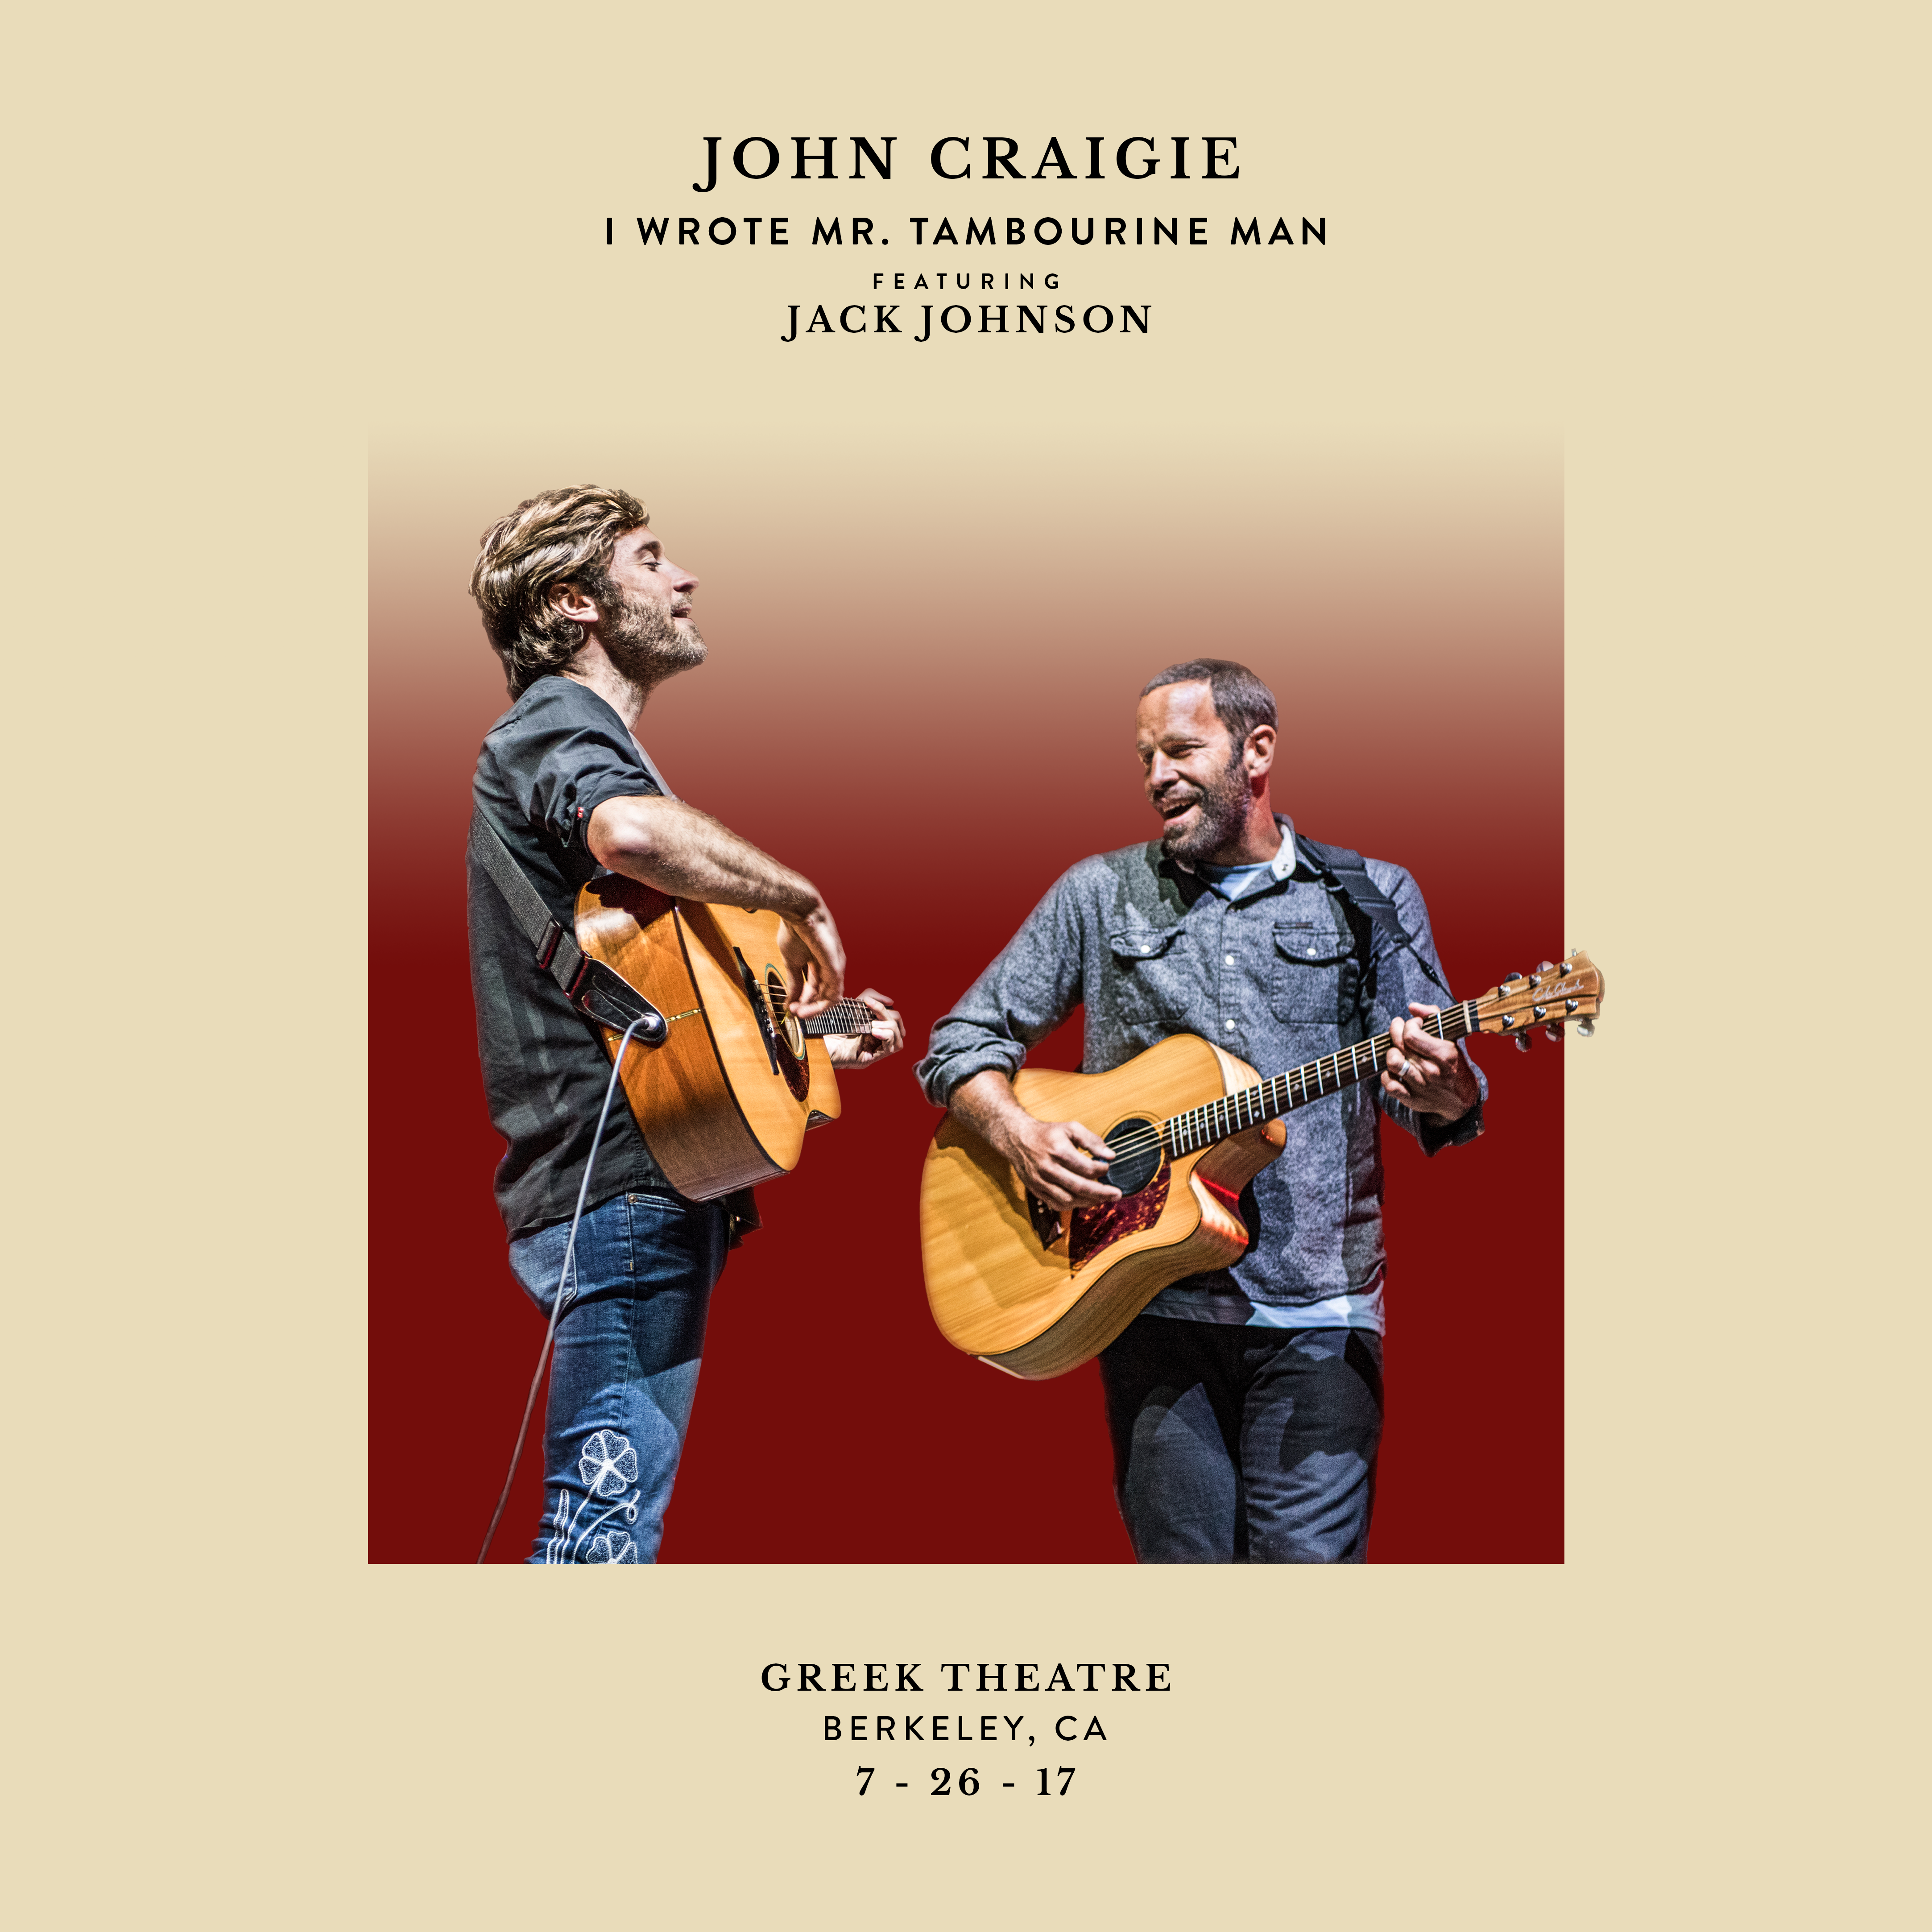 Home Jack Johnson Music Tips For Buying An Electric Guitar Guitars 101 Your Bible On Friday Our Good Friend John Craigie Released A Version Of His Song I Wrote Mr Tambourine Man Recorded Live July 26th 2017 At The Greek Theatre In